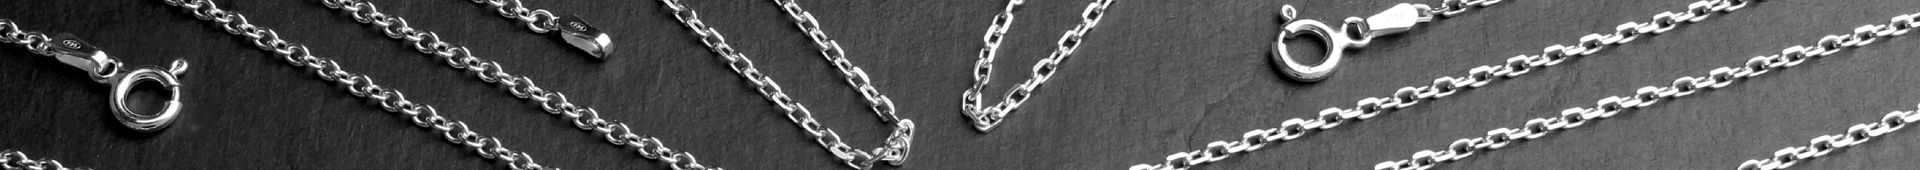 Men's Sterling Silver Cable Chains